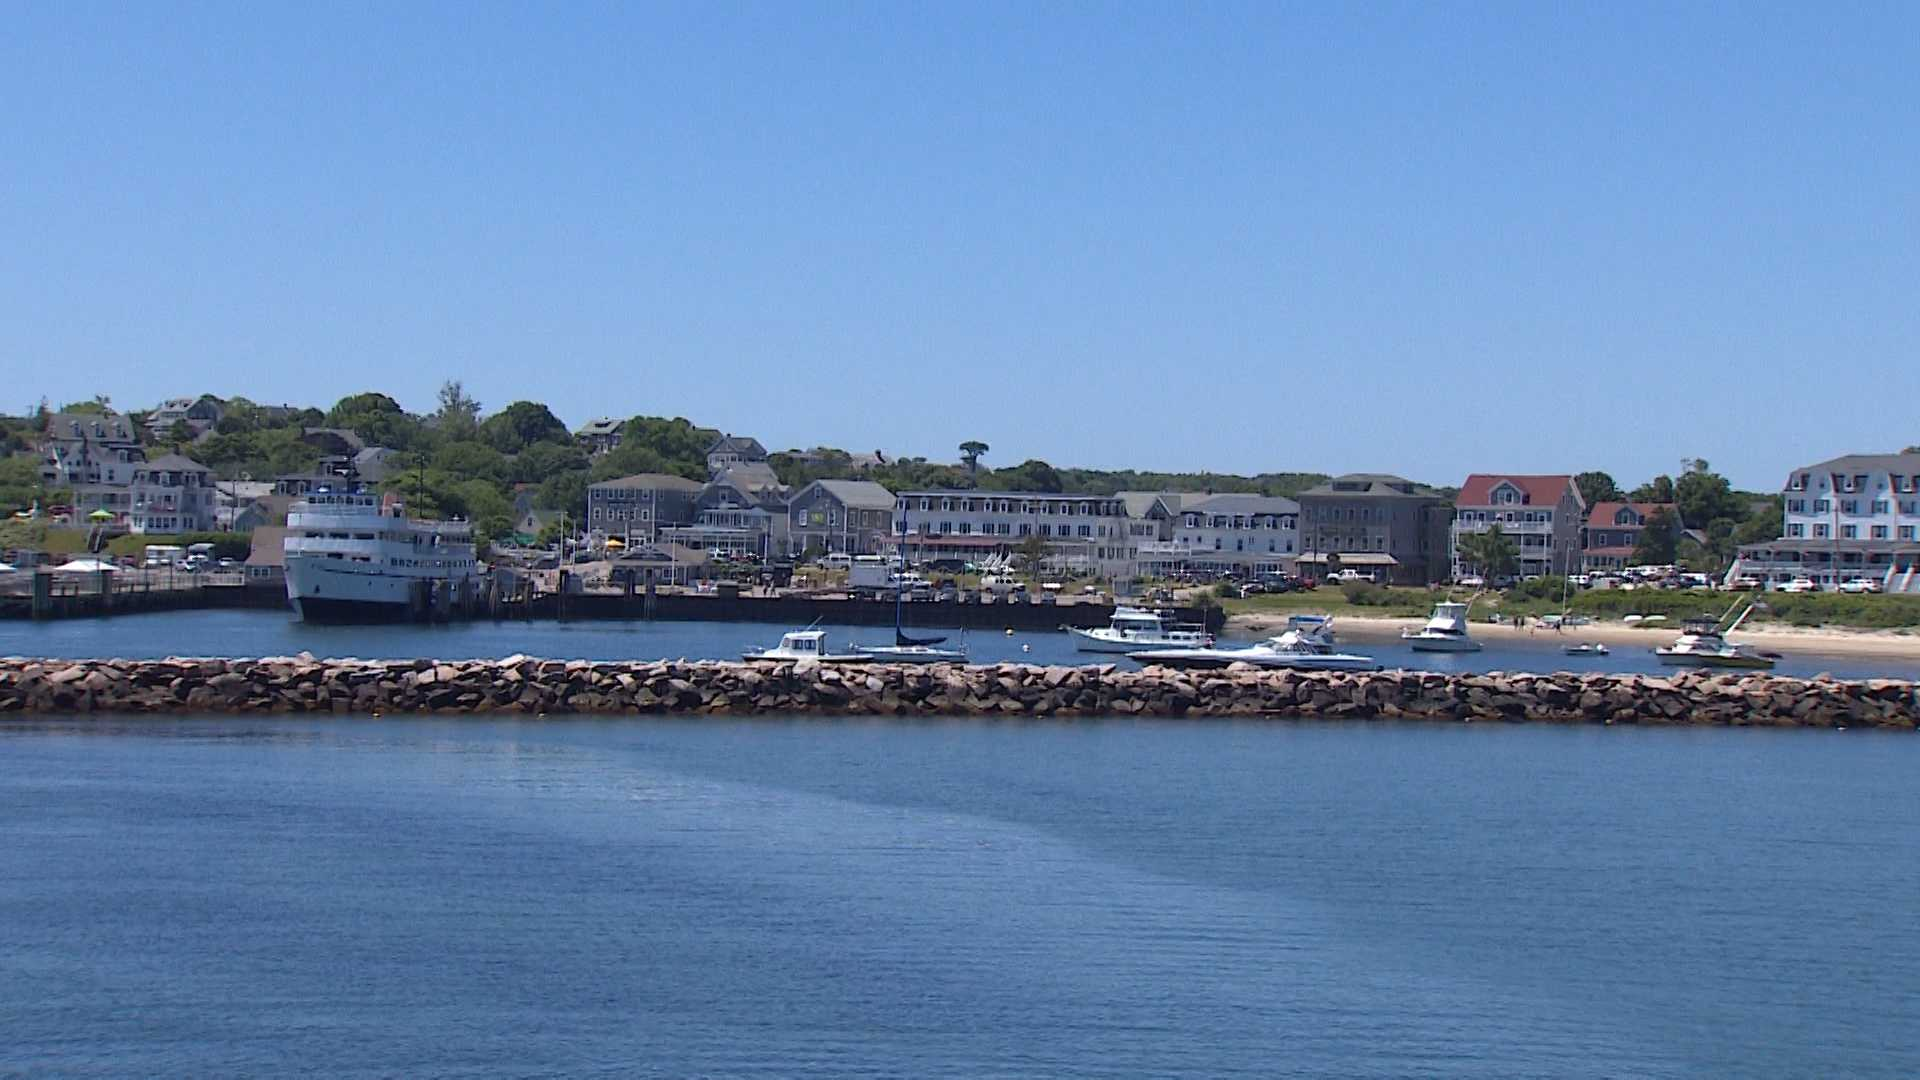 Wednesday, July 16: Main Streets and Back Roads: Block Island